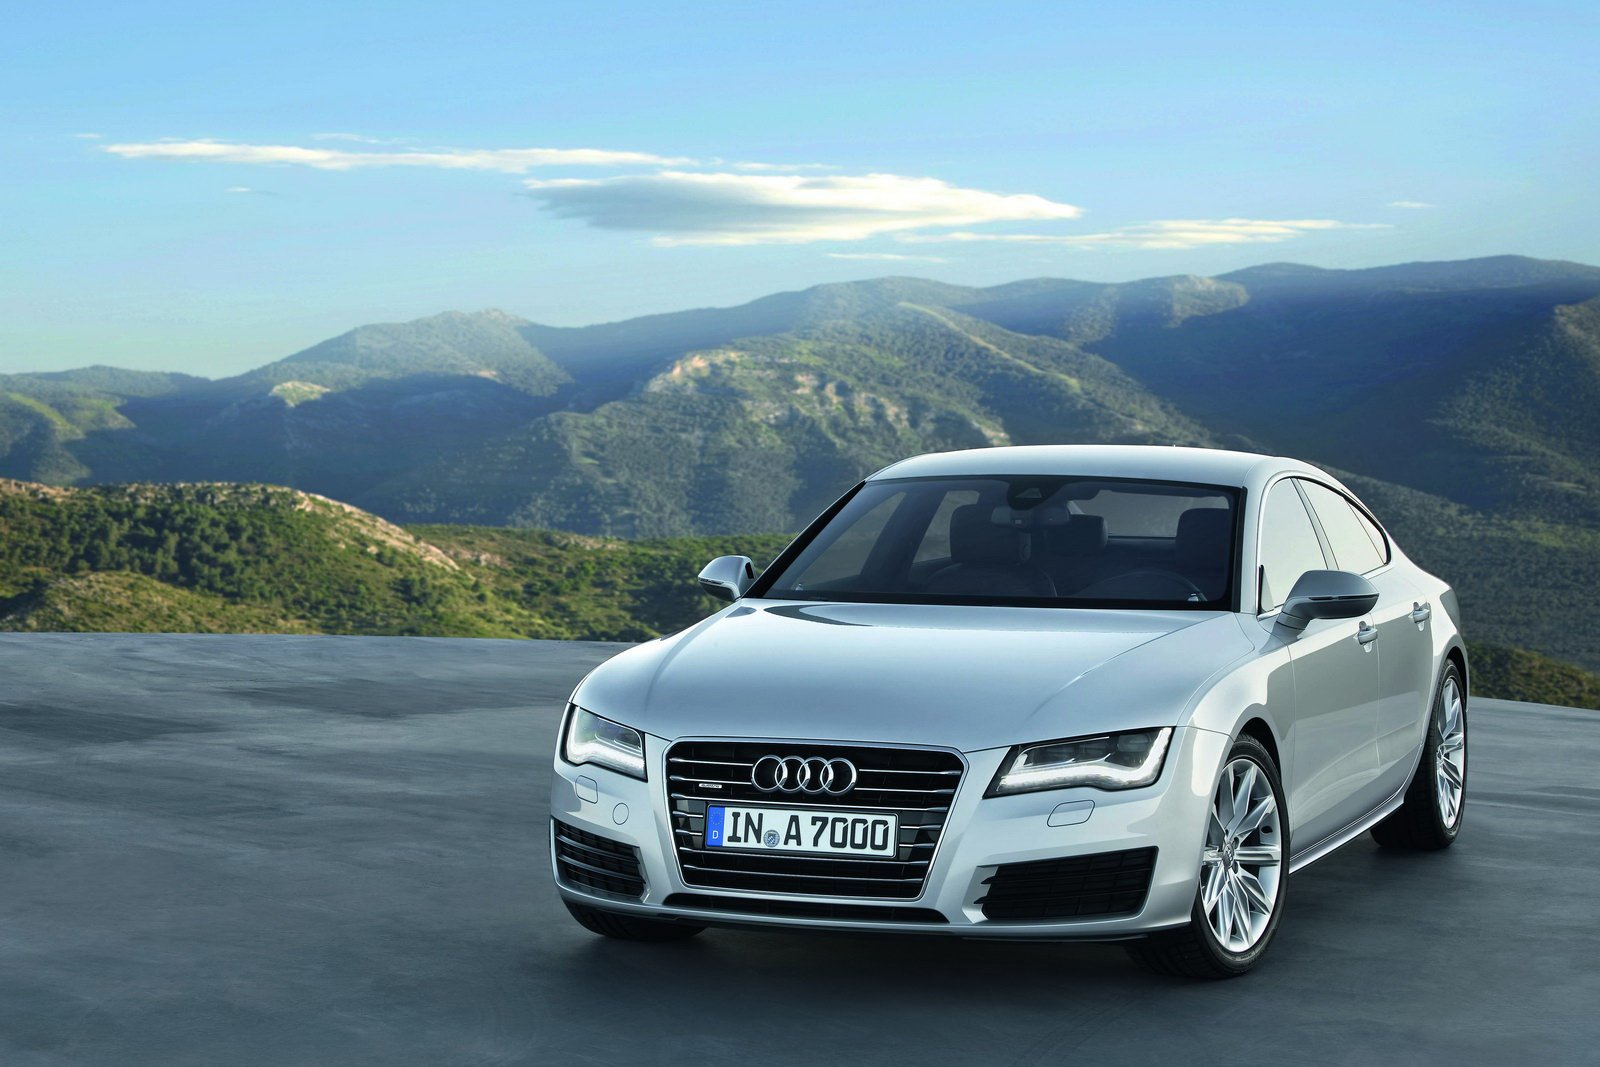 New Audi Wallpaper Audi A7 On This Month